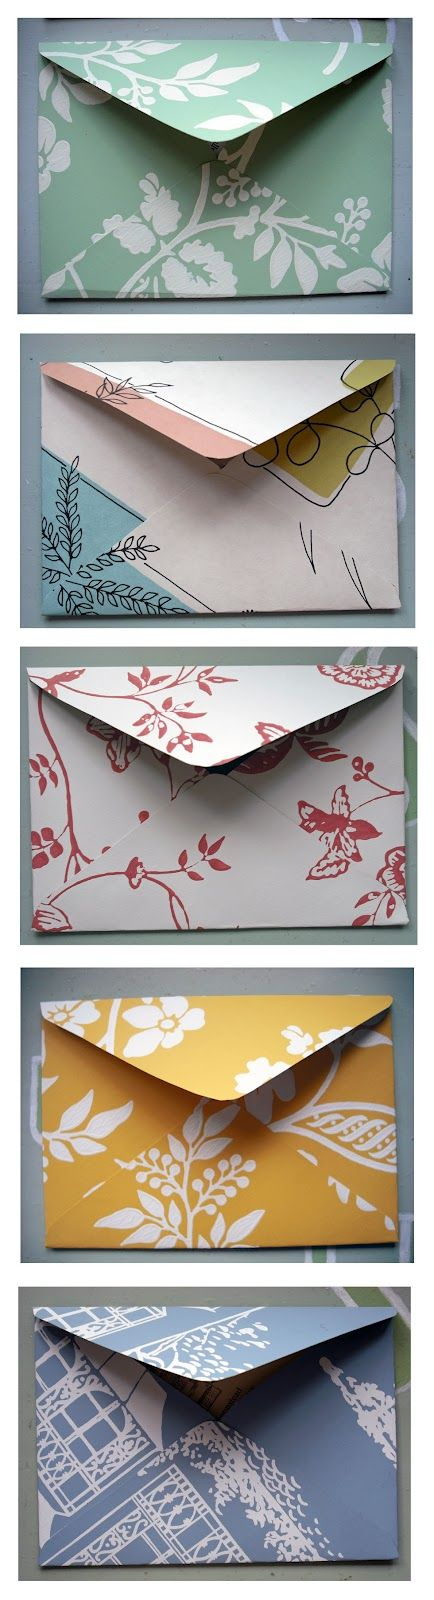 Ideas : How to make envelopes from scrapbook paper, wallpaper samples, and other pretty paper.